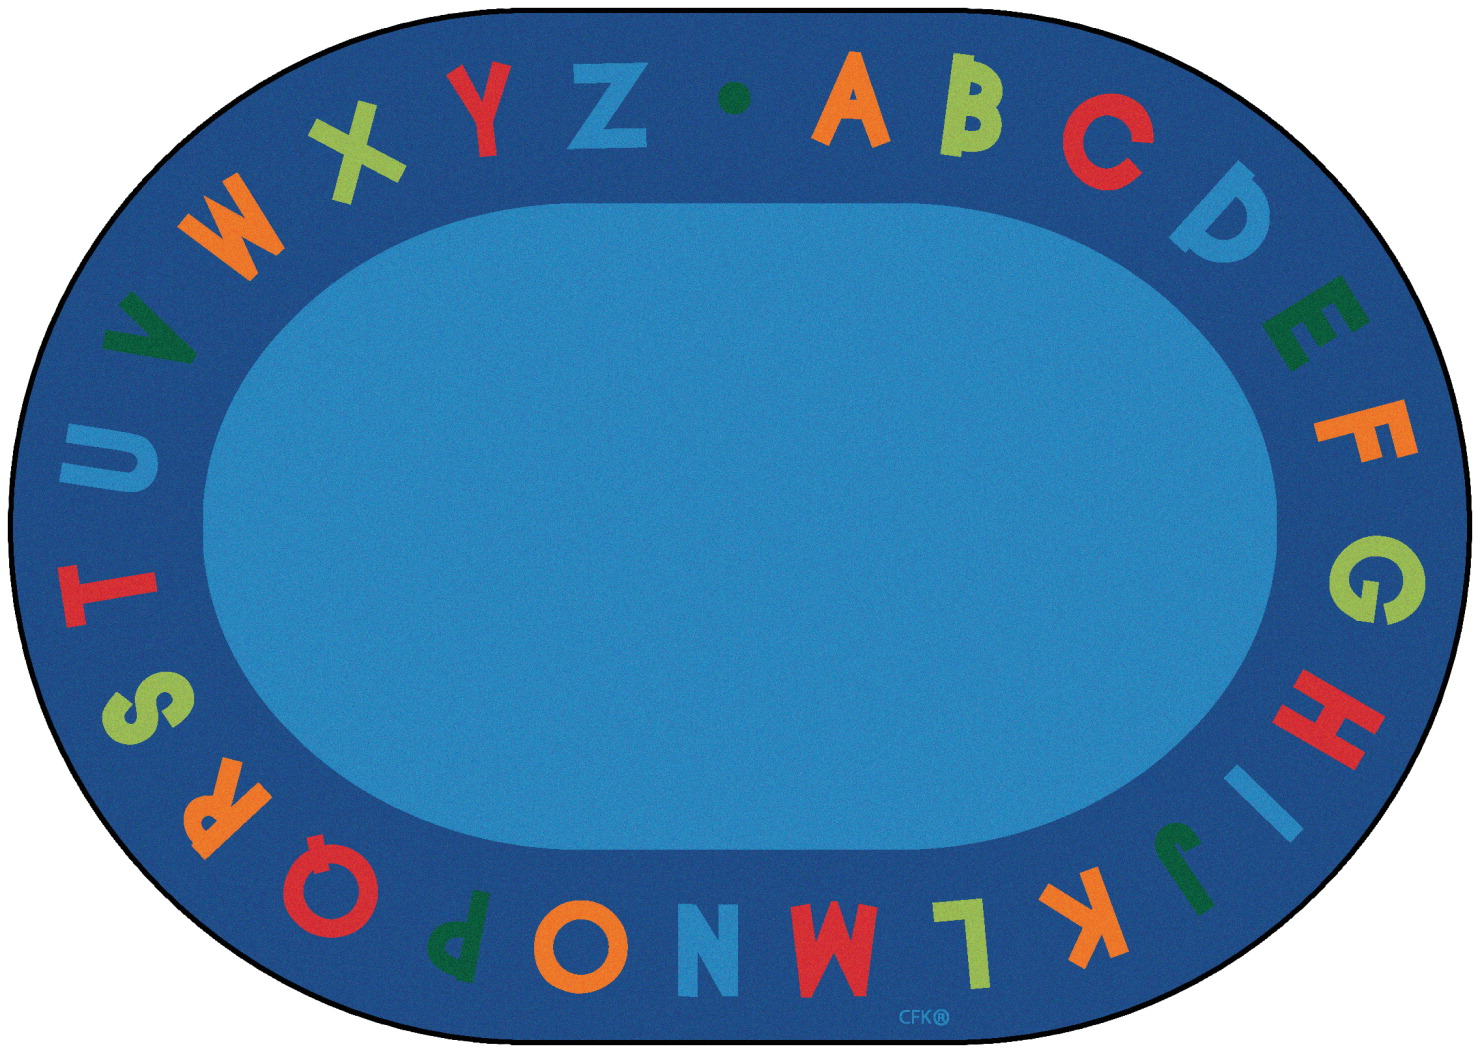 Carpets For Kids Alphabet Circletime Rug, 8 Feet 3 Inches x 11 Feet 8 Inches, Oval